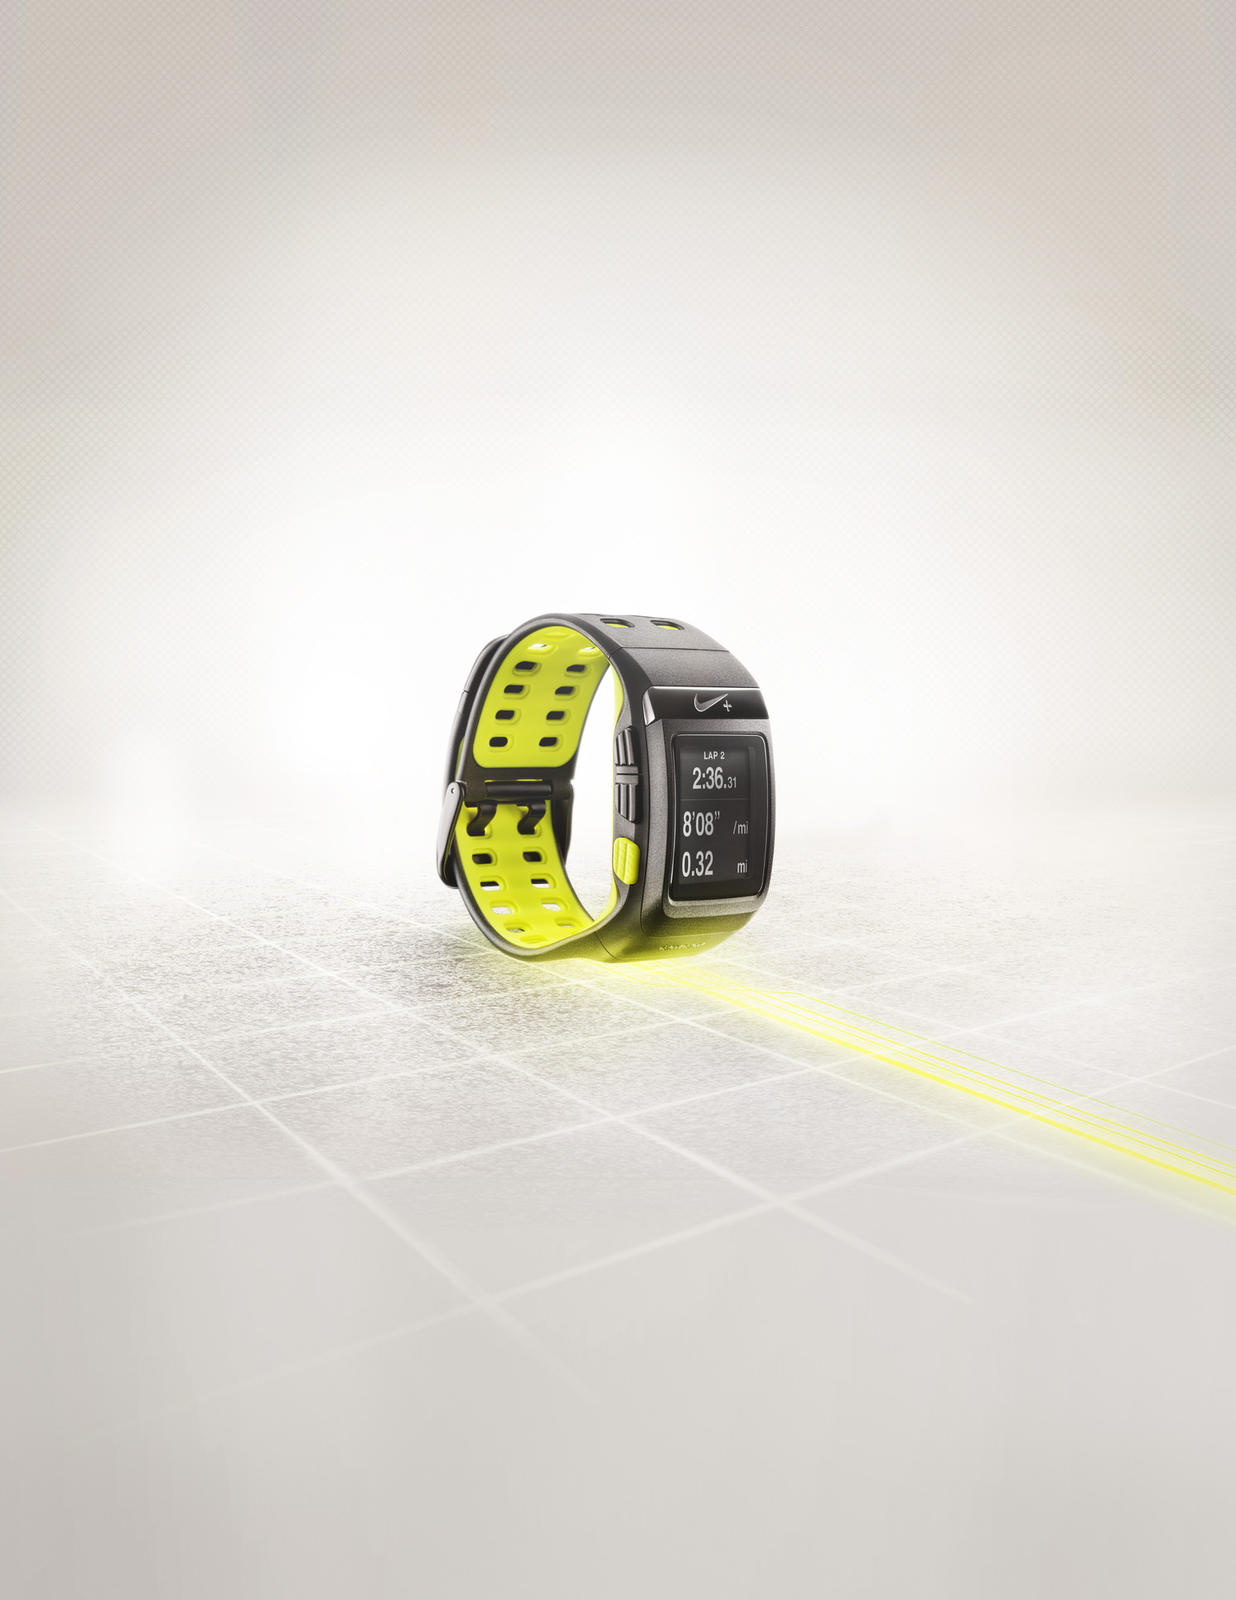 Tomtom Horloge New Collection Of Nike 43 Sportwatch Gps Powered By Tomtom